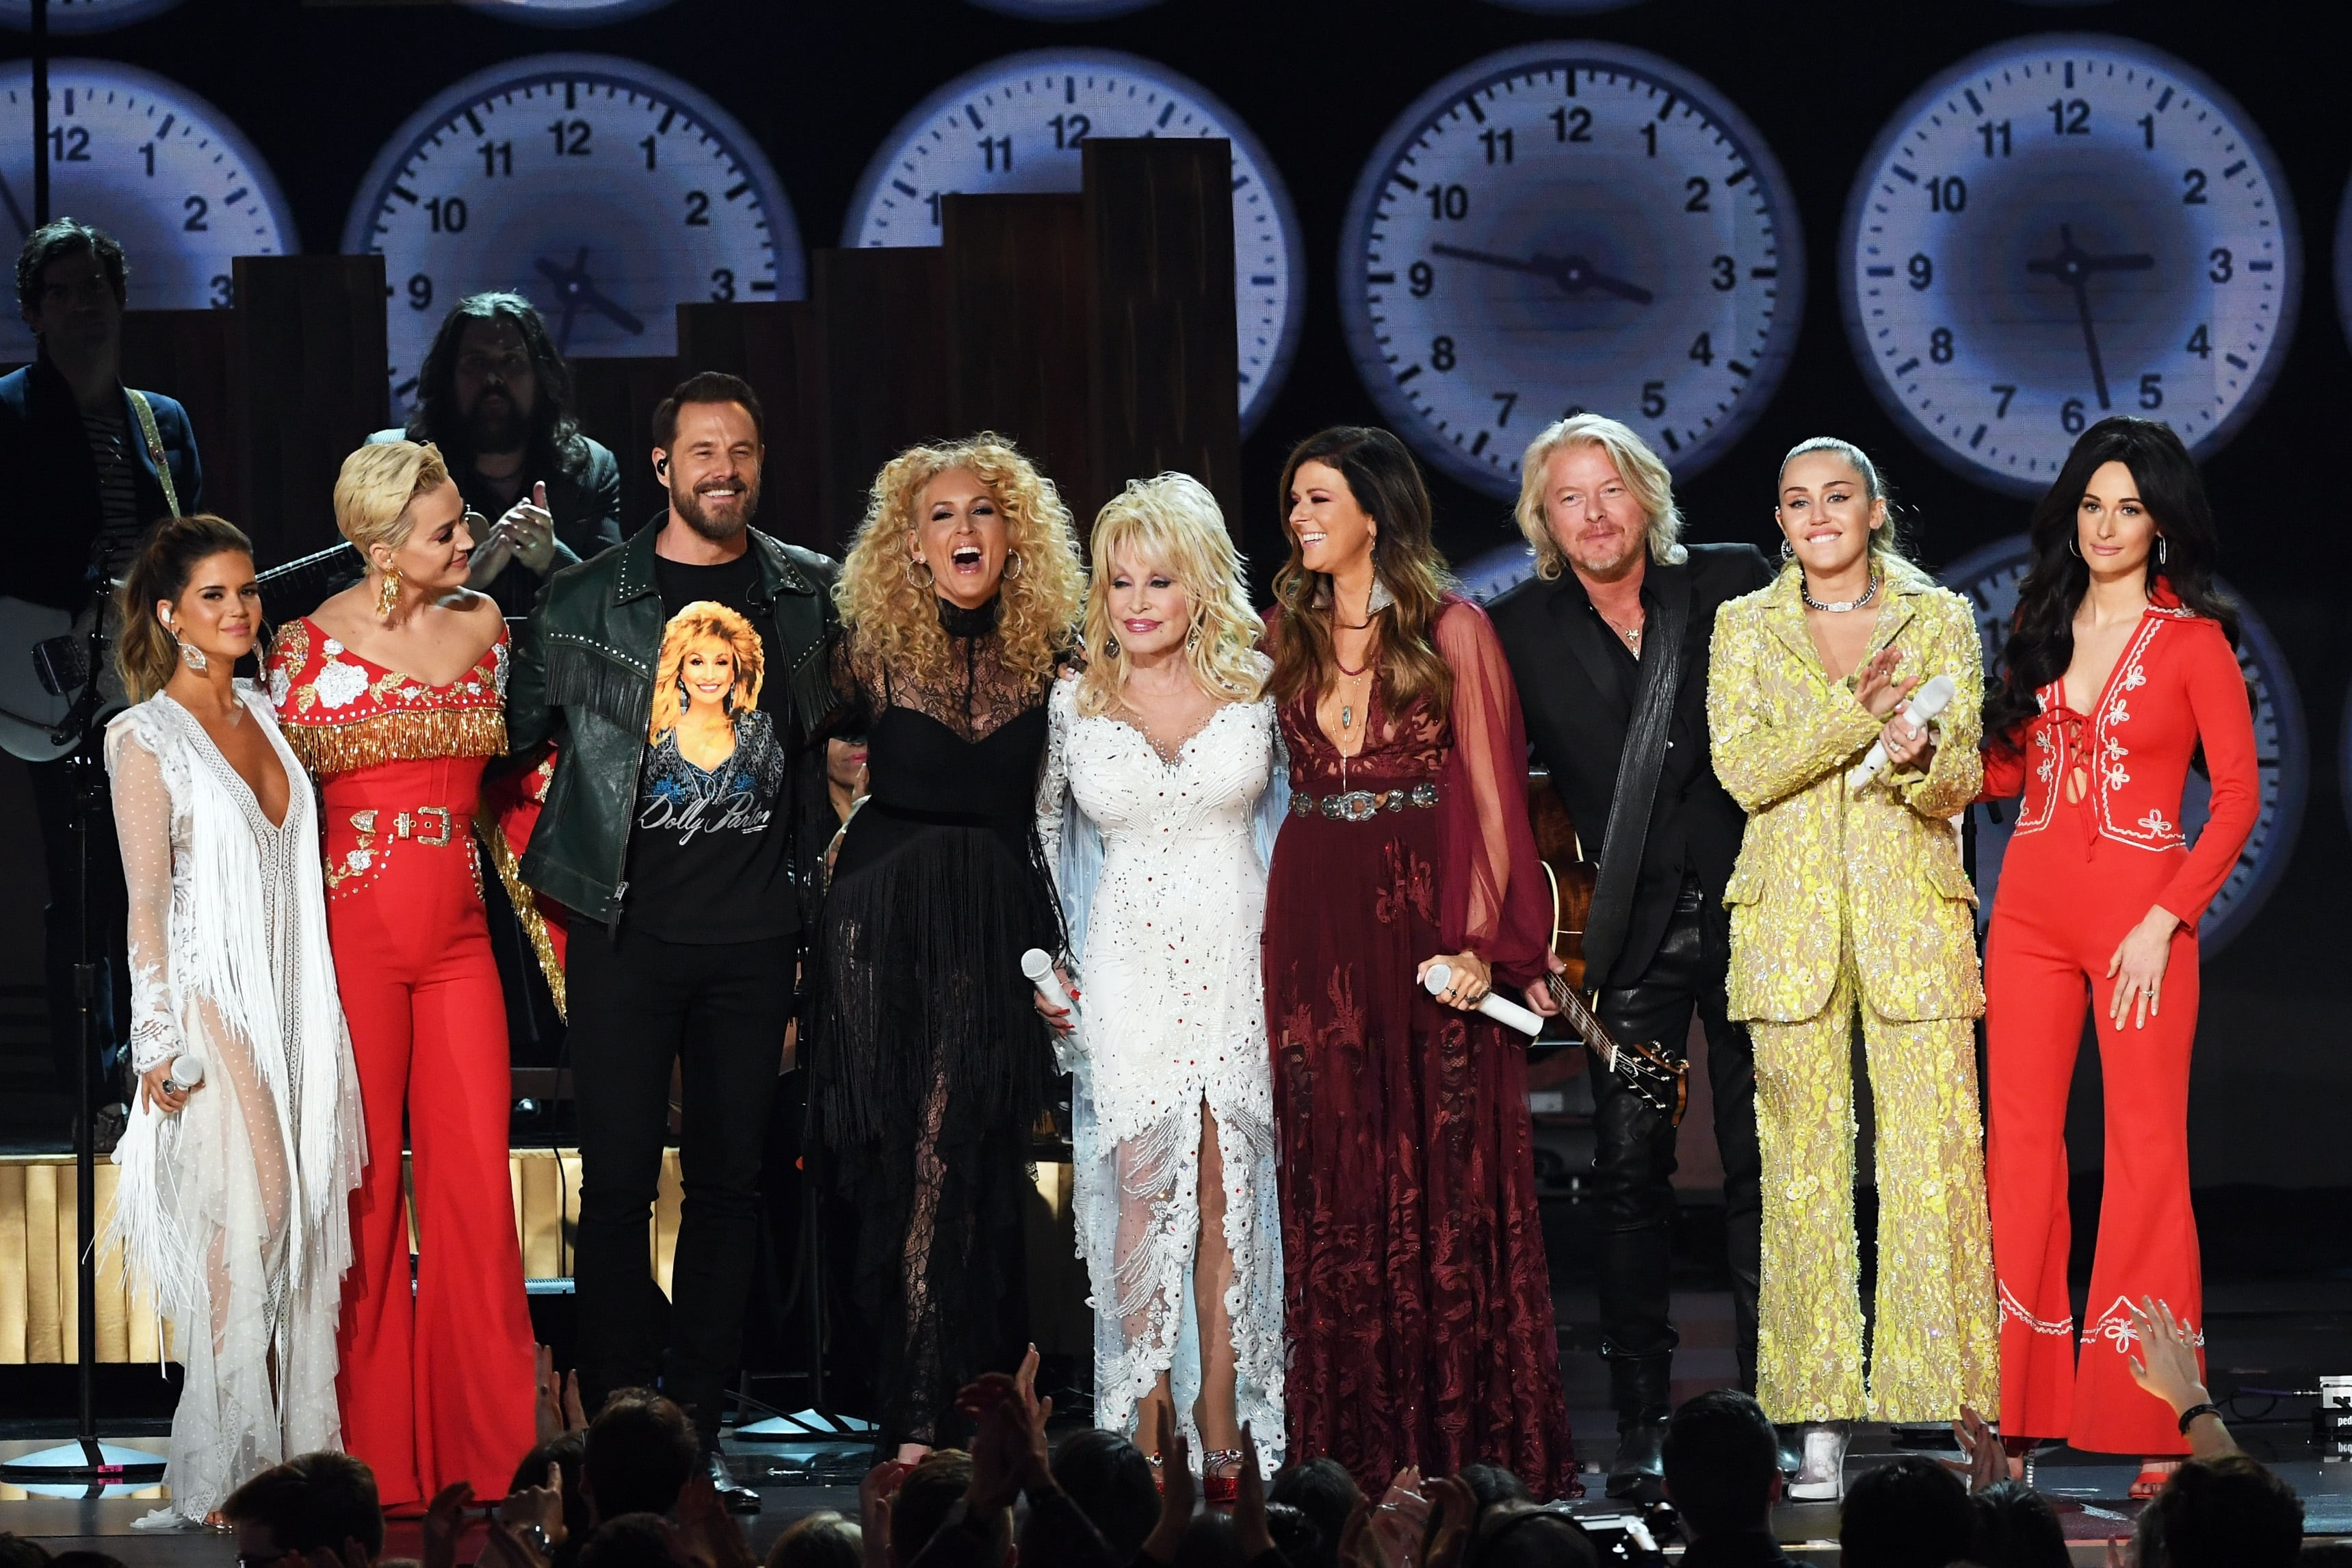 Music S Brightest Stars Pay Tribute To Dolly Parton At The Grammy Awards Sounds Like Nashville